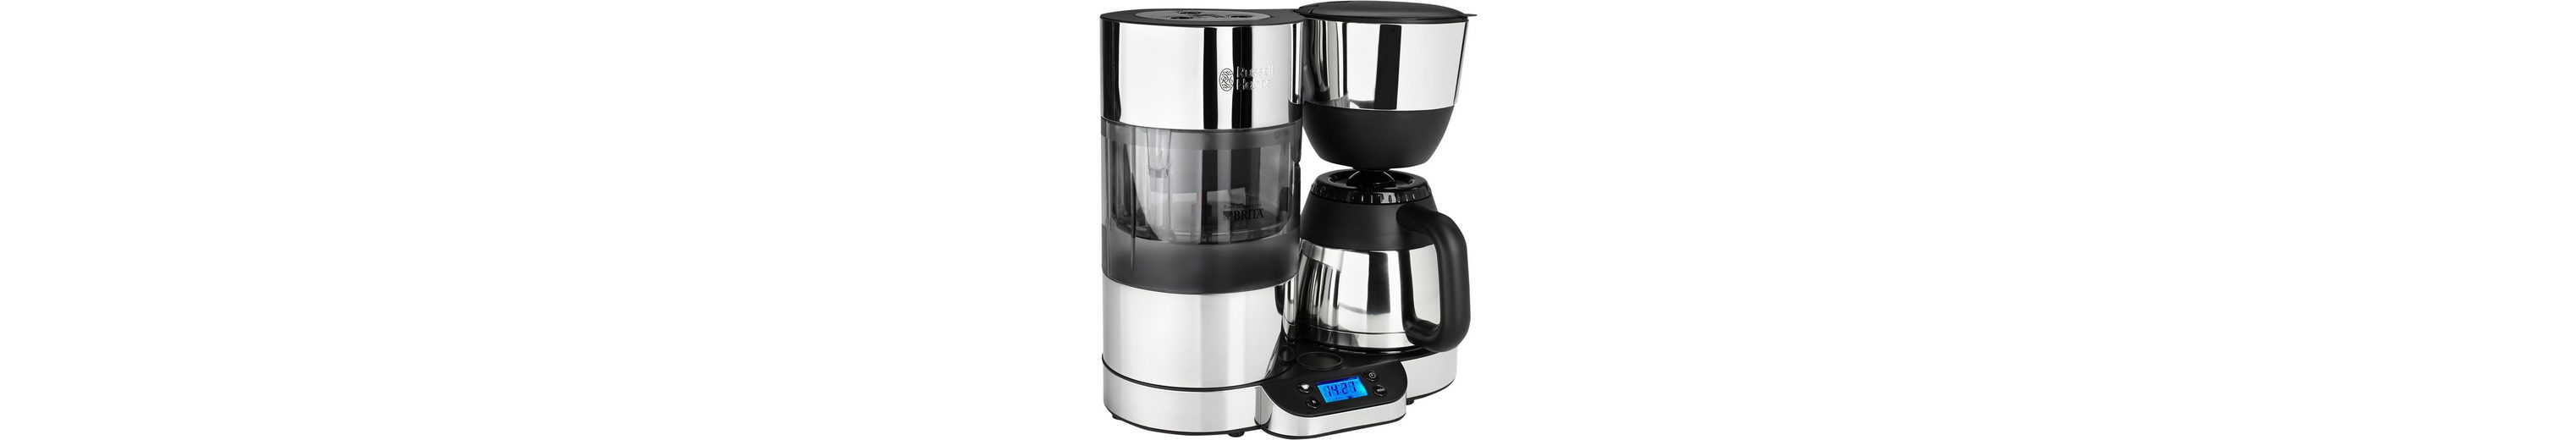 Russell Hobbs Digitale Thermo-Kaffeemaschine Clarity 20771-56